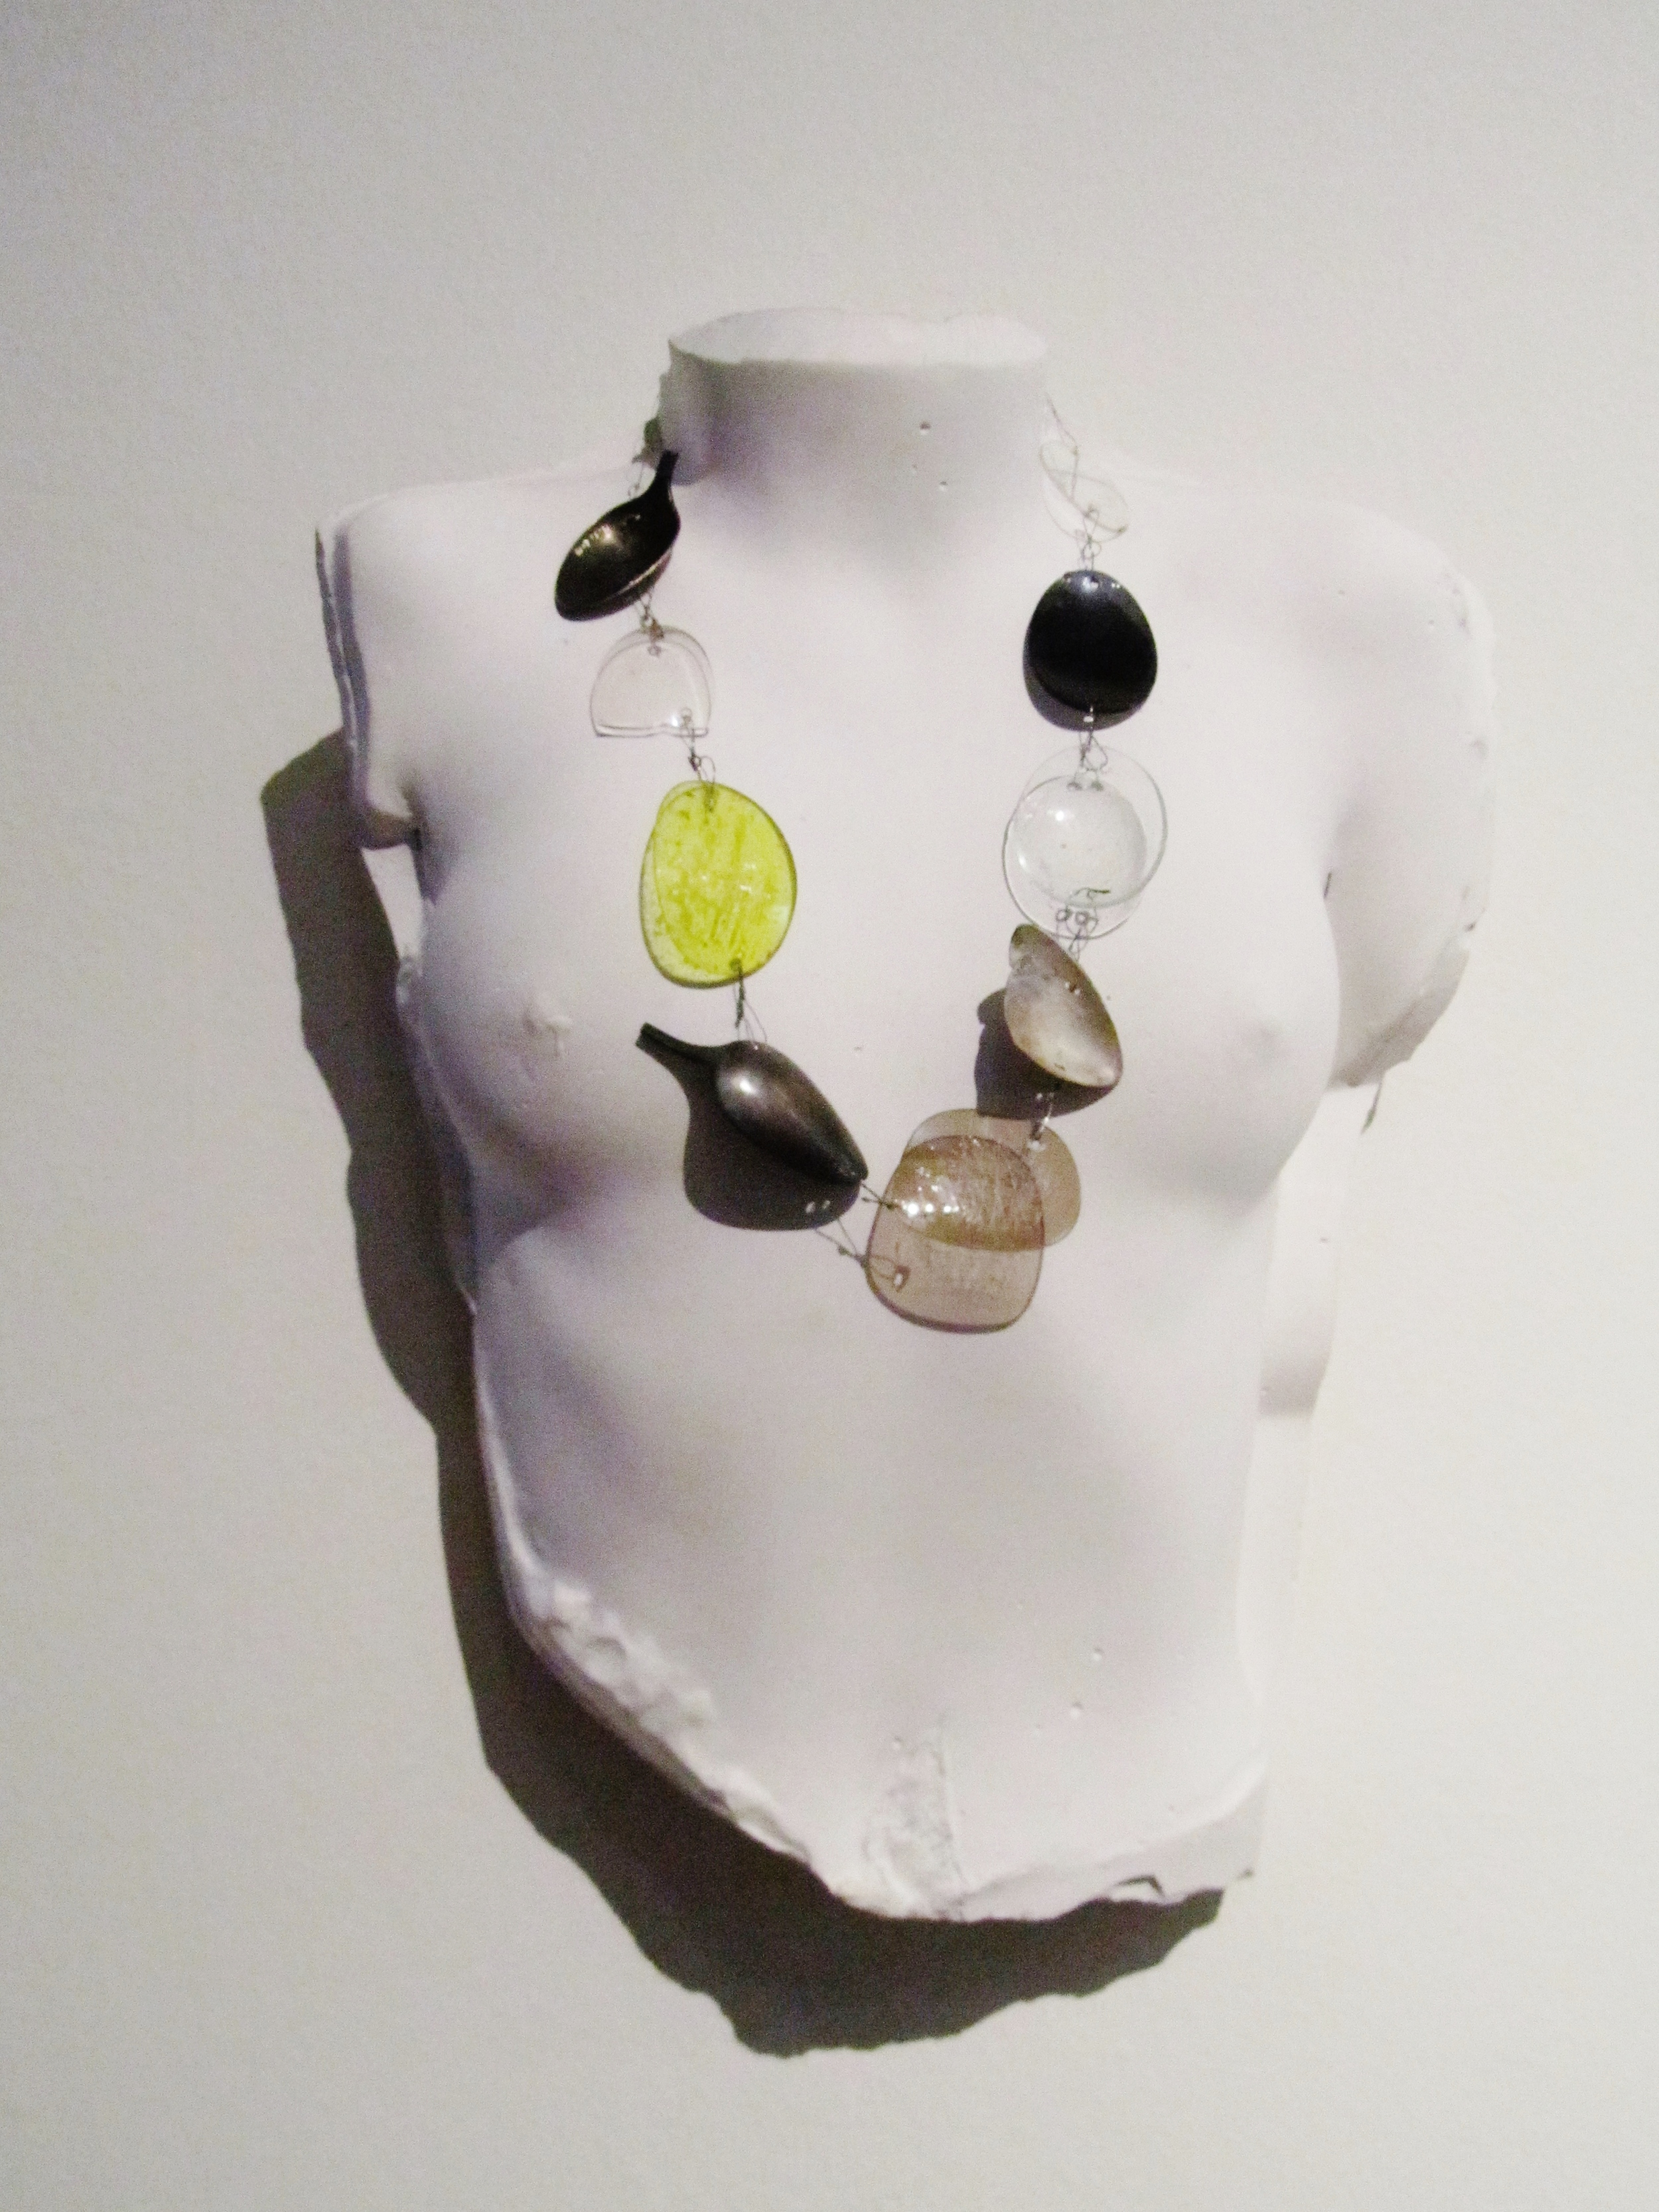 Lens Spoon Chain 2013 silver, steel, glass, acrylic    The busts are cast from Schobinger's own daughter when she was a young girl.